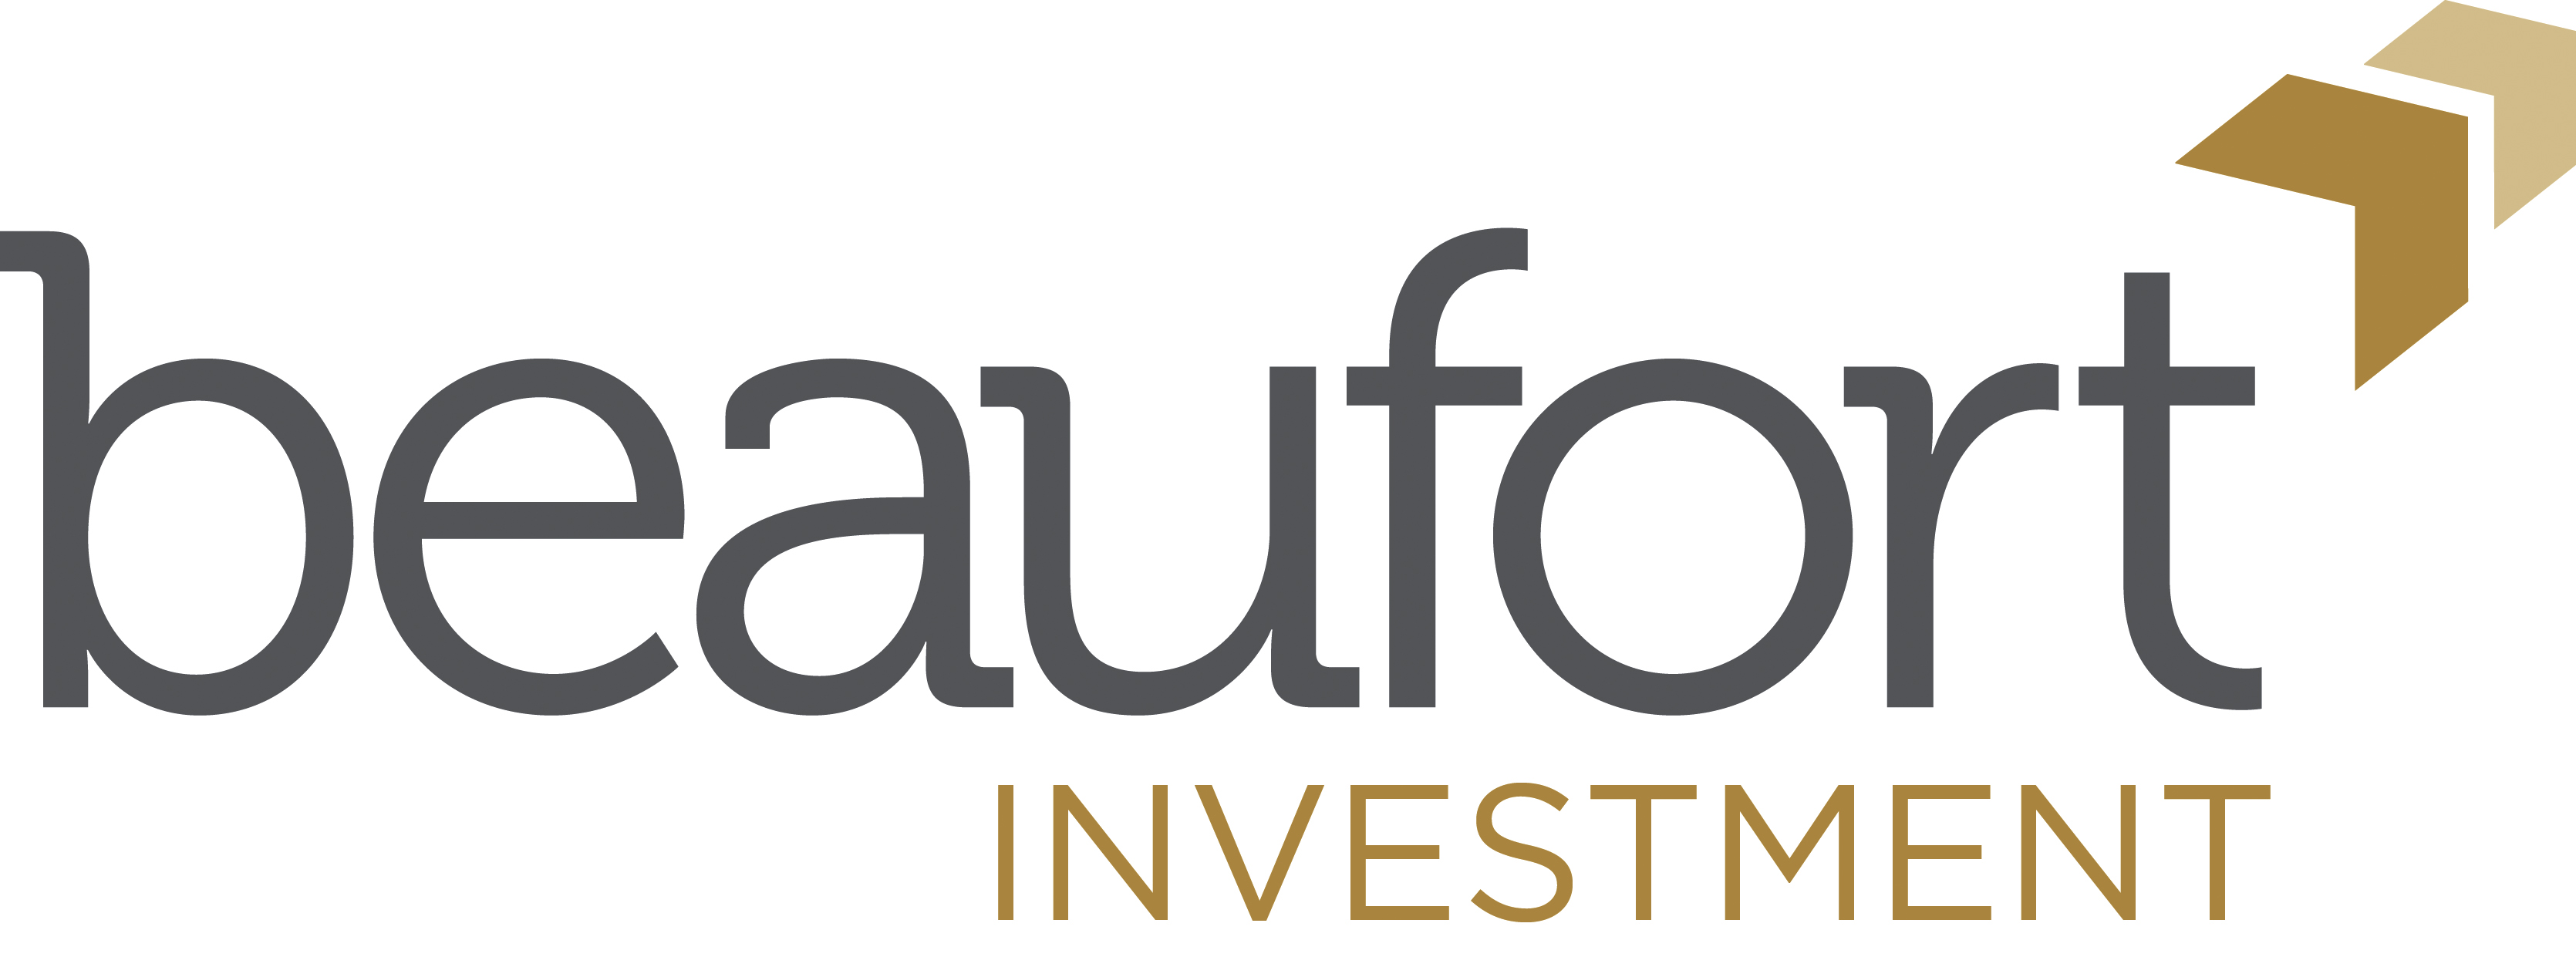 Beaufort Investment